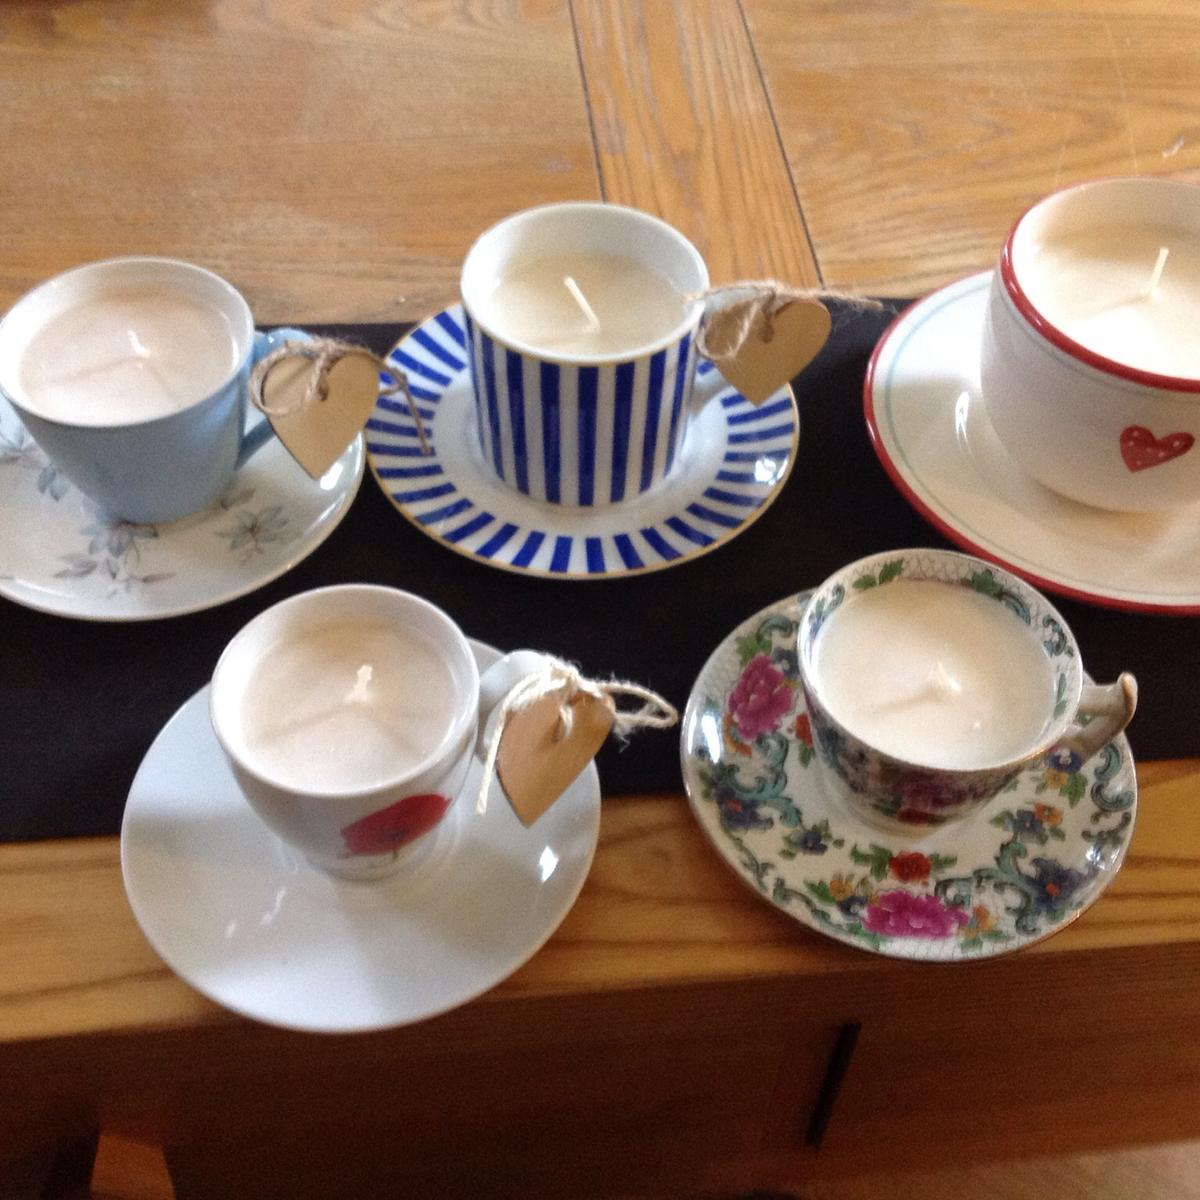 Wide range of teacup candles, many colours and size, ranging in price from £5 to £12